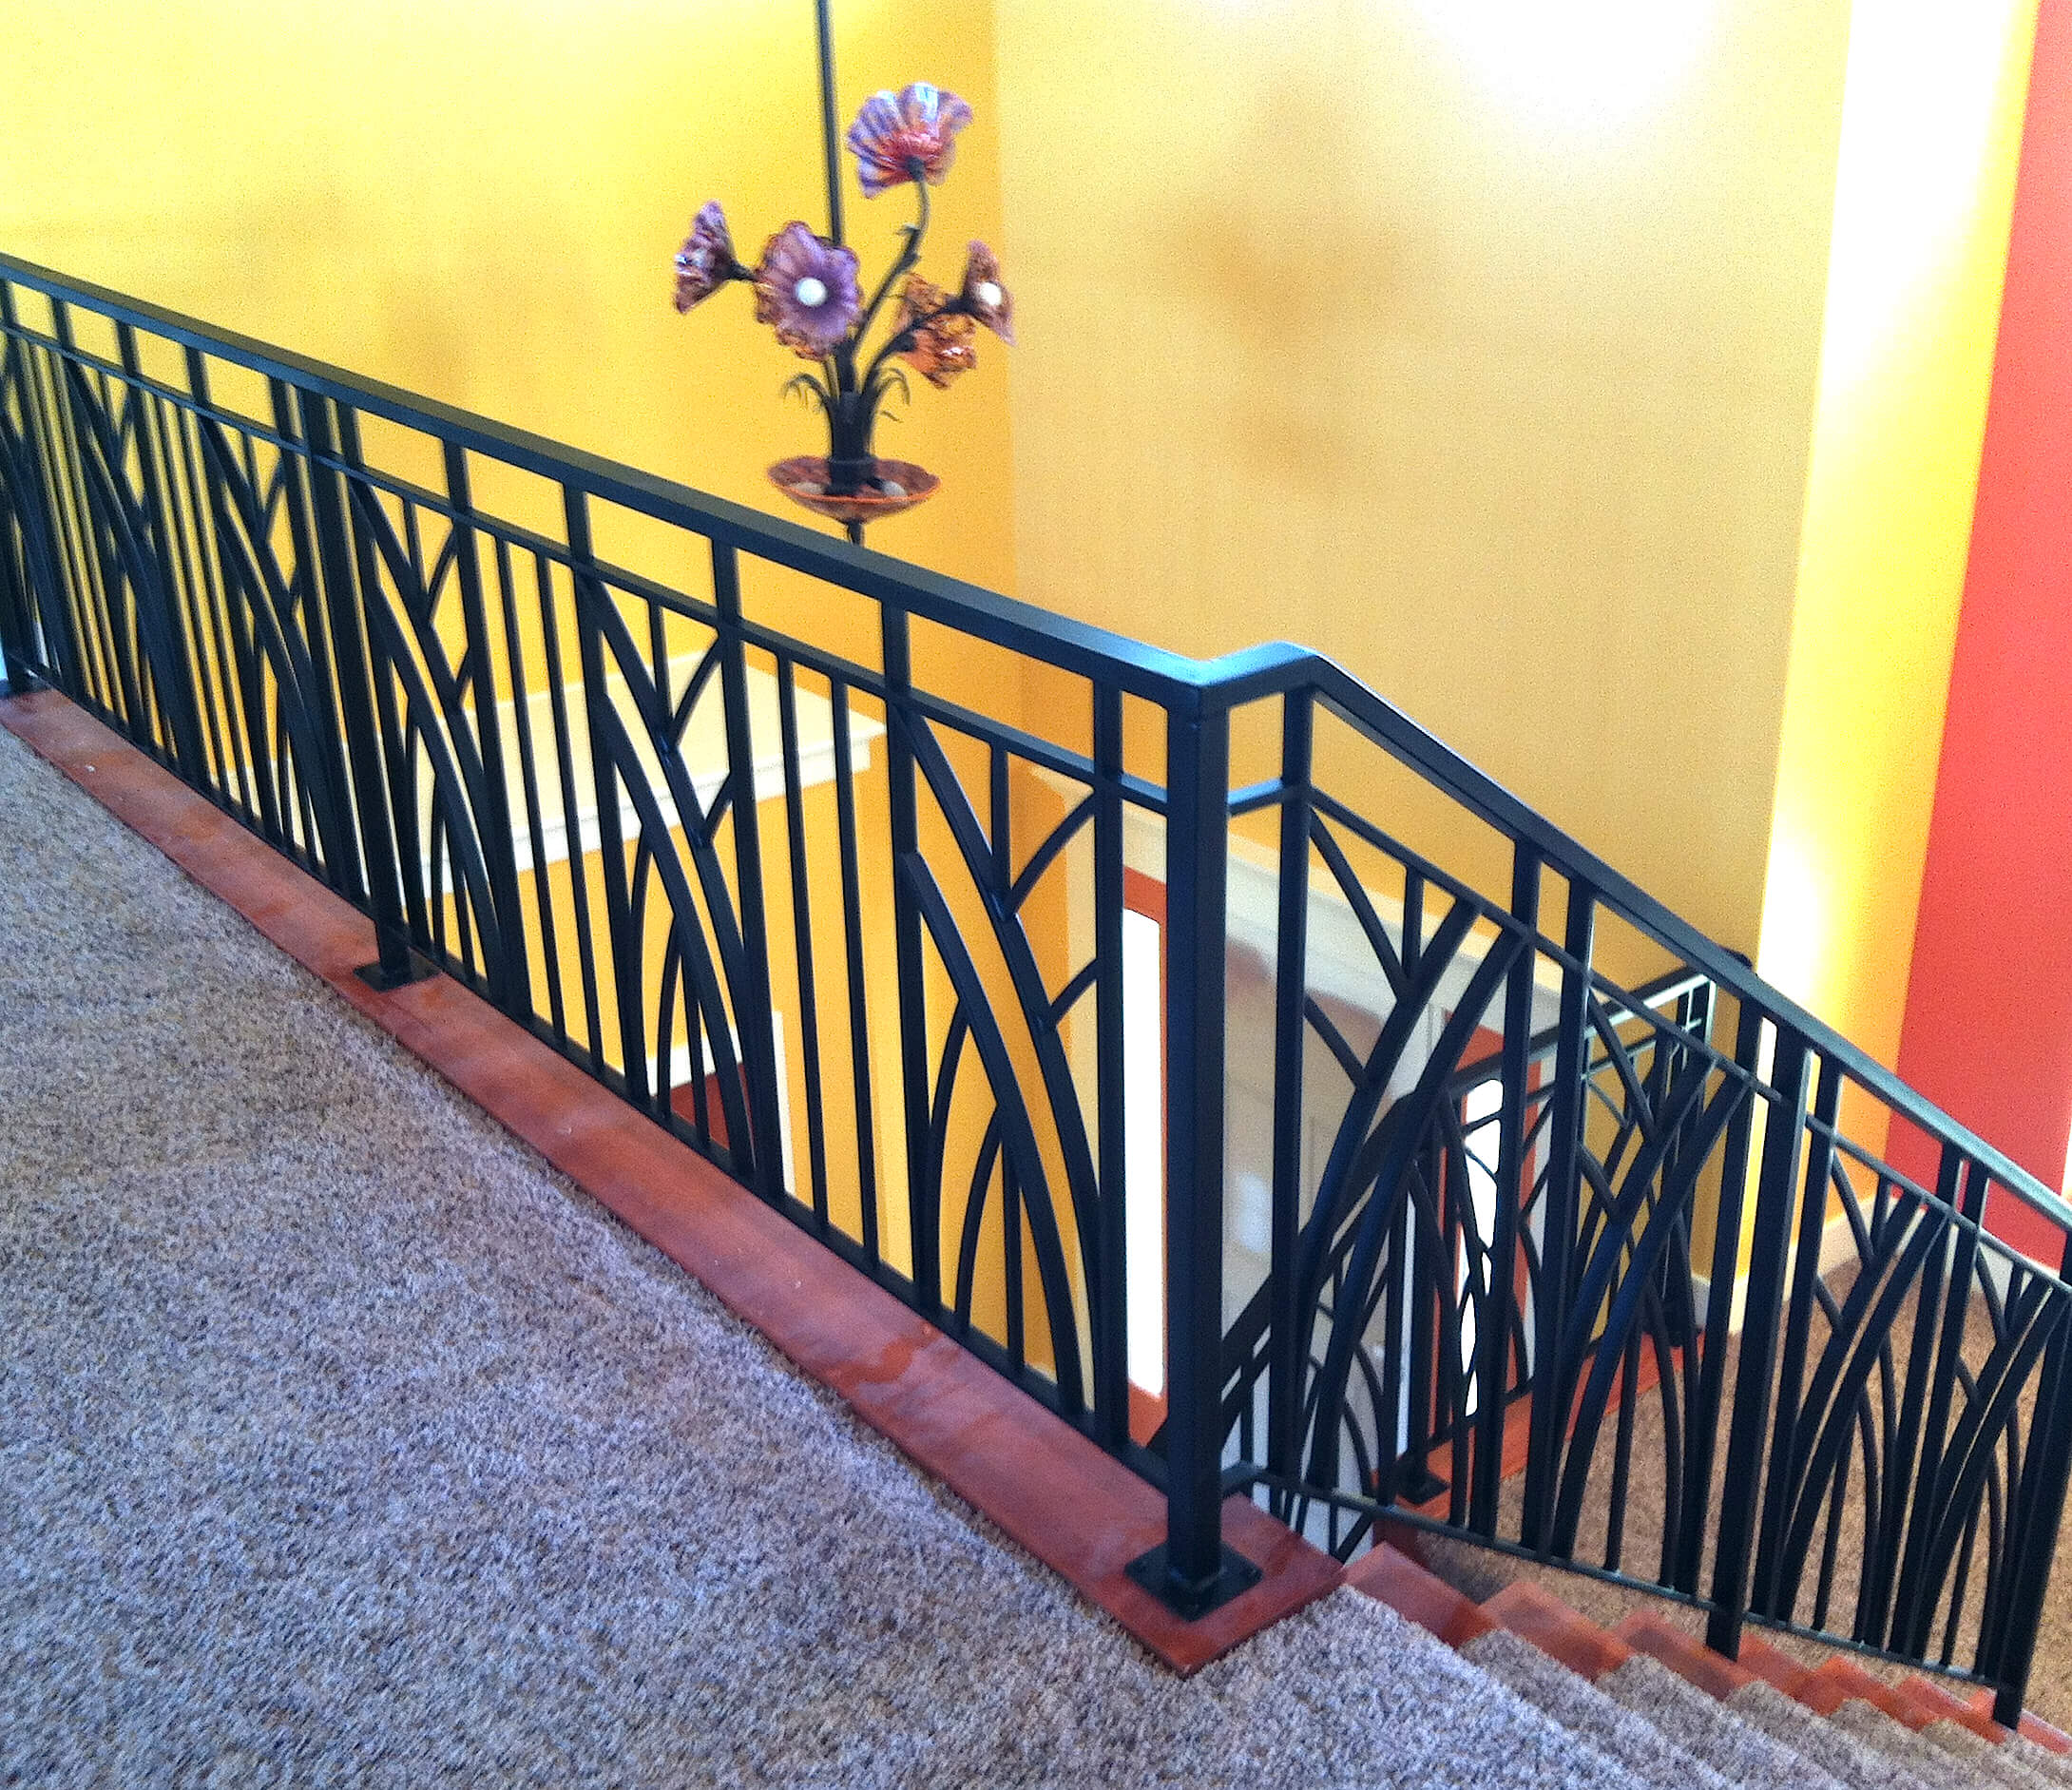 Iron Railings, Fences, Gates Custom-Designed for Your Home